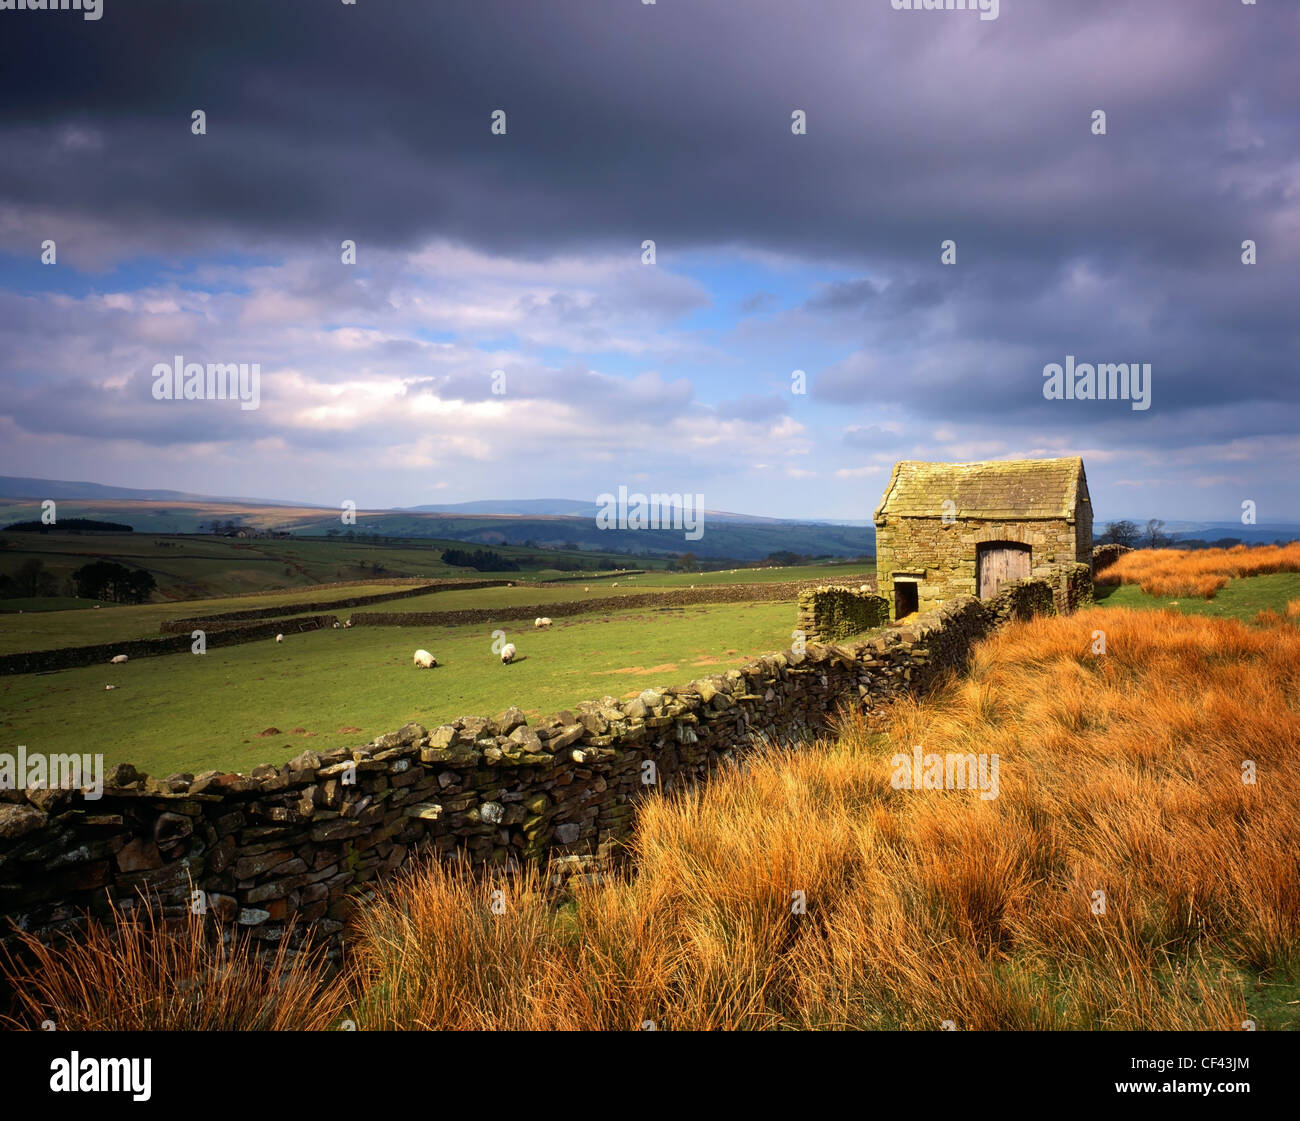 Sheep grazing in a field enclosed by a traditional dry-stone wall and barn in the Forest of Bowland. - Stock Image